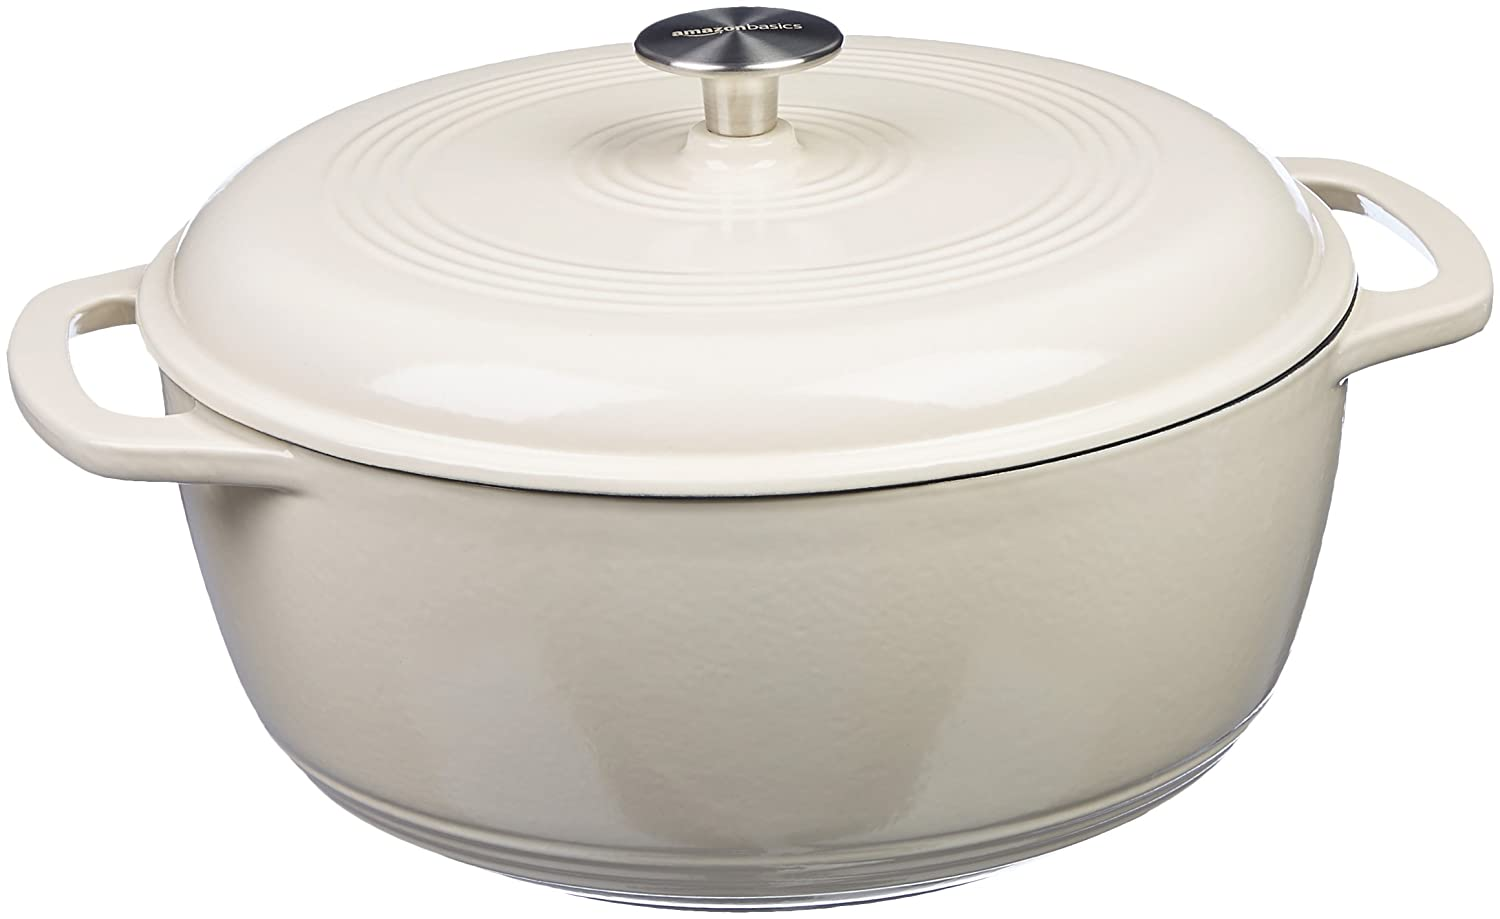 AmazonBasics Enameled Cast Iron Dutch Oven - 7.5-Quart, White